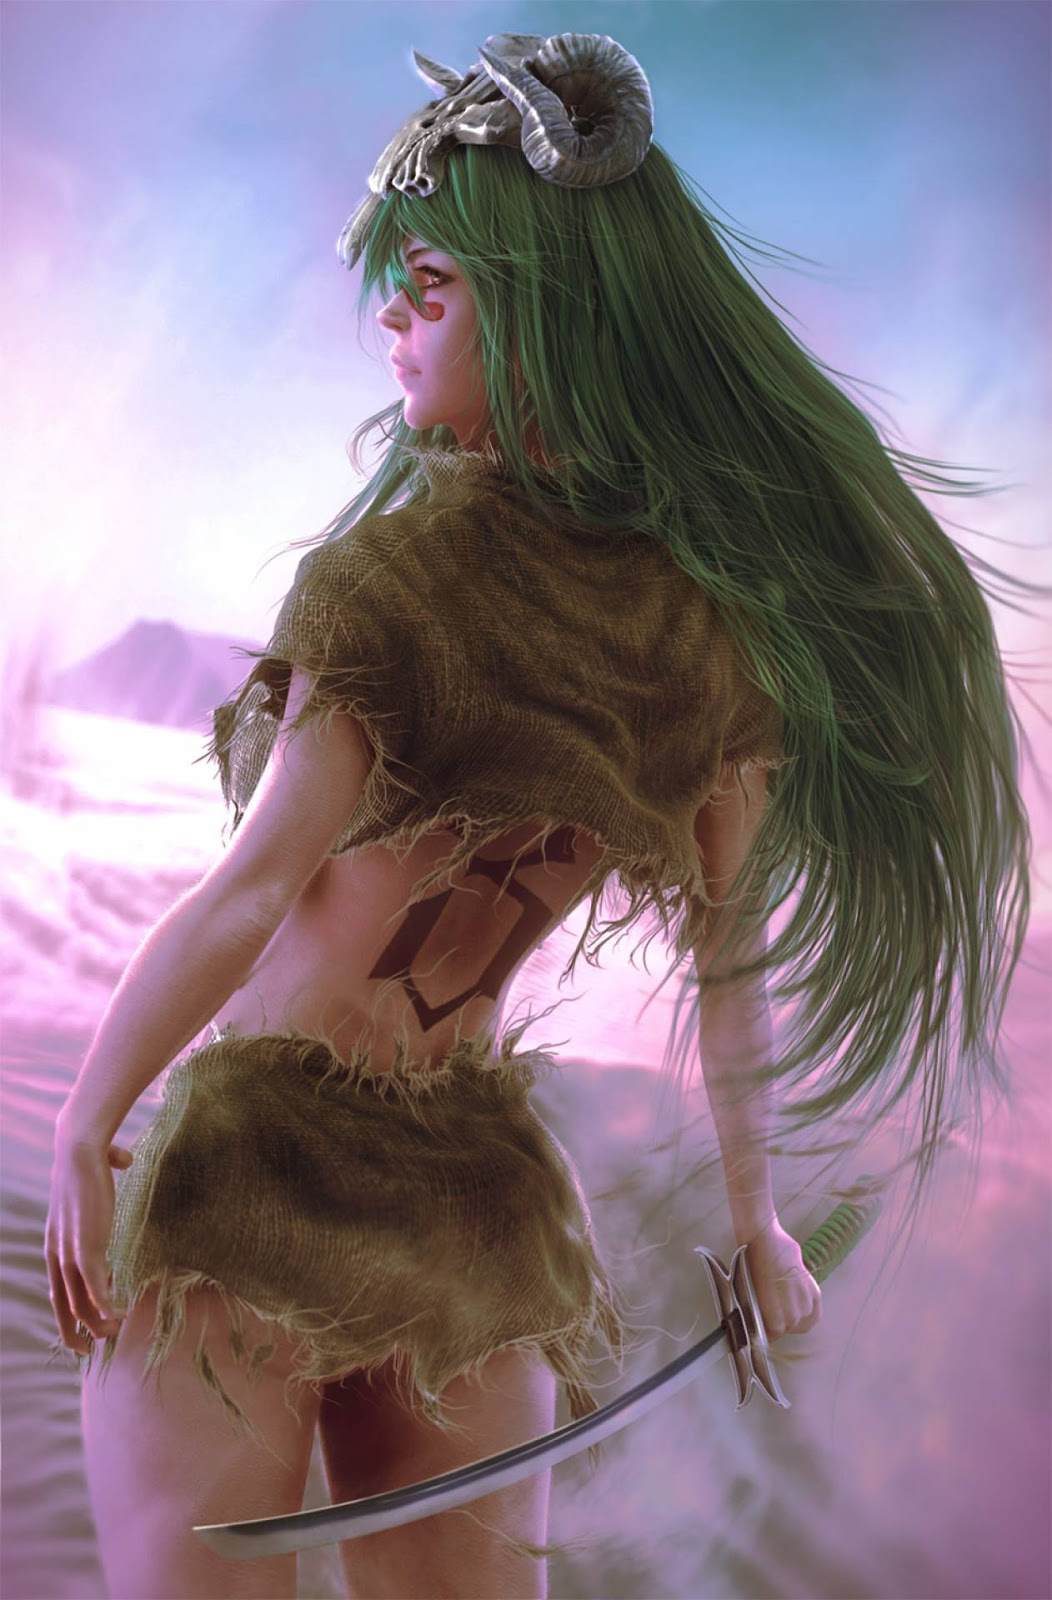 A large '3' is tattooed on her back, indicating that she was the former 3rd Espada.